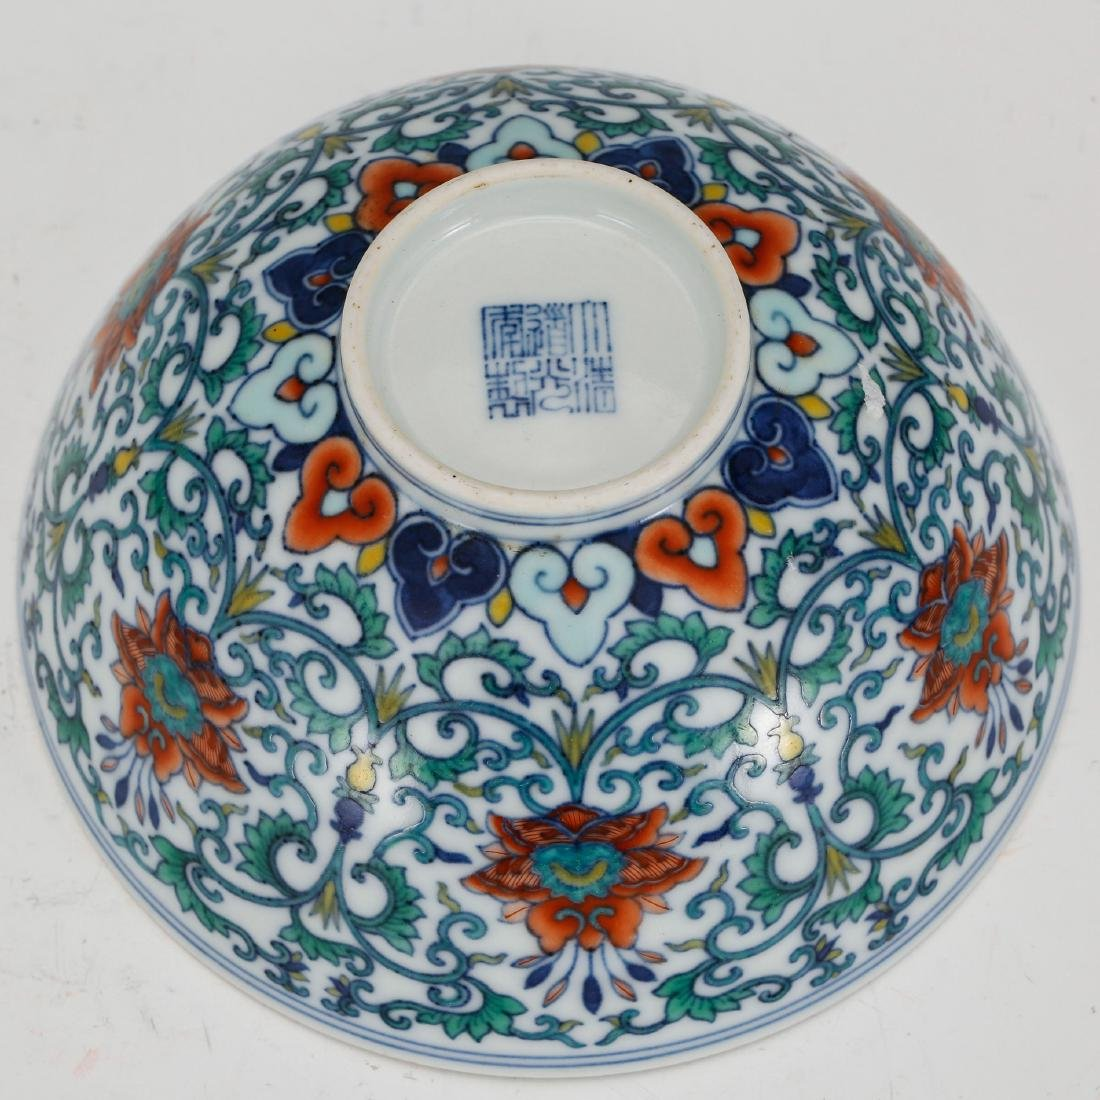 CHINESE QING DYNASTY DOUCAI PORCELAIN FOLIAGE BOWL - 4